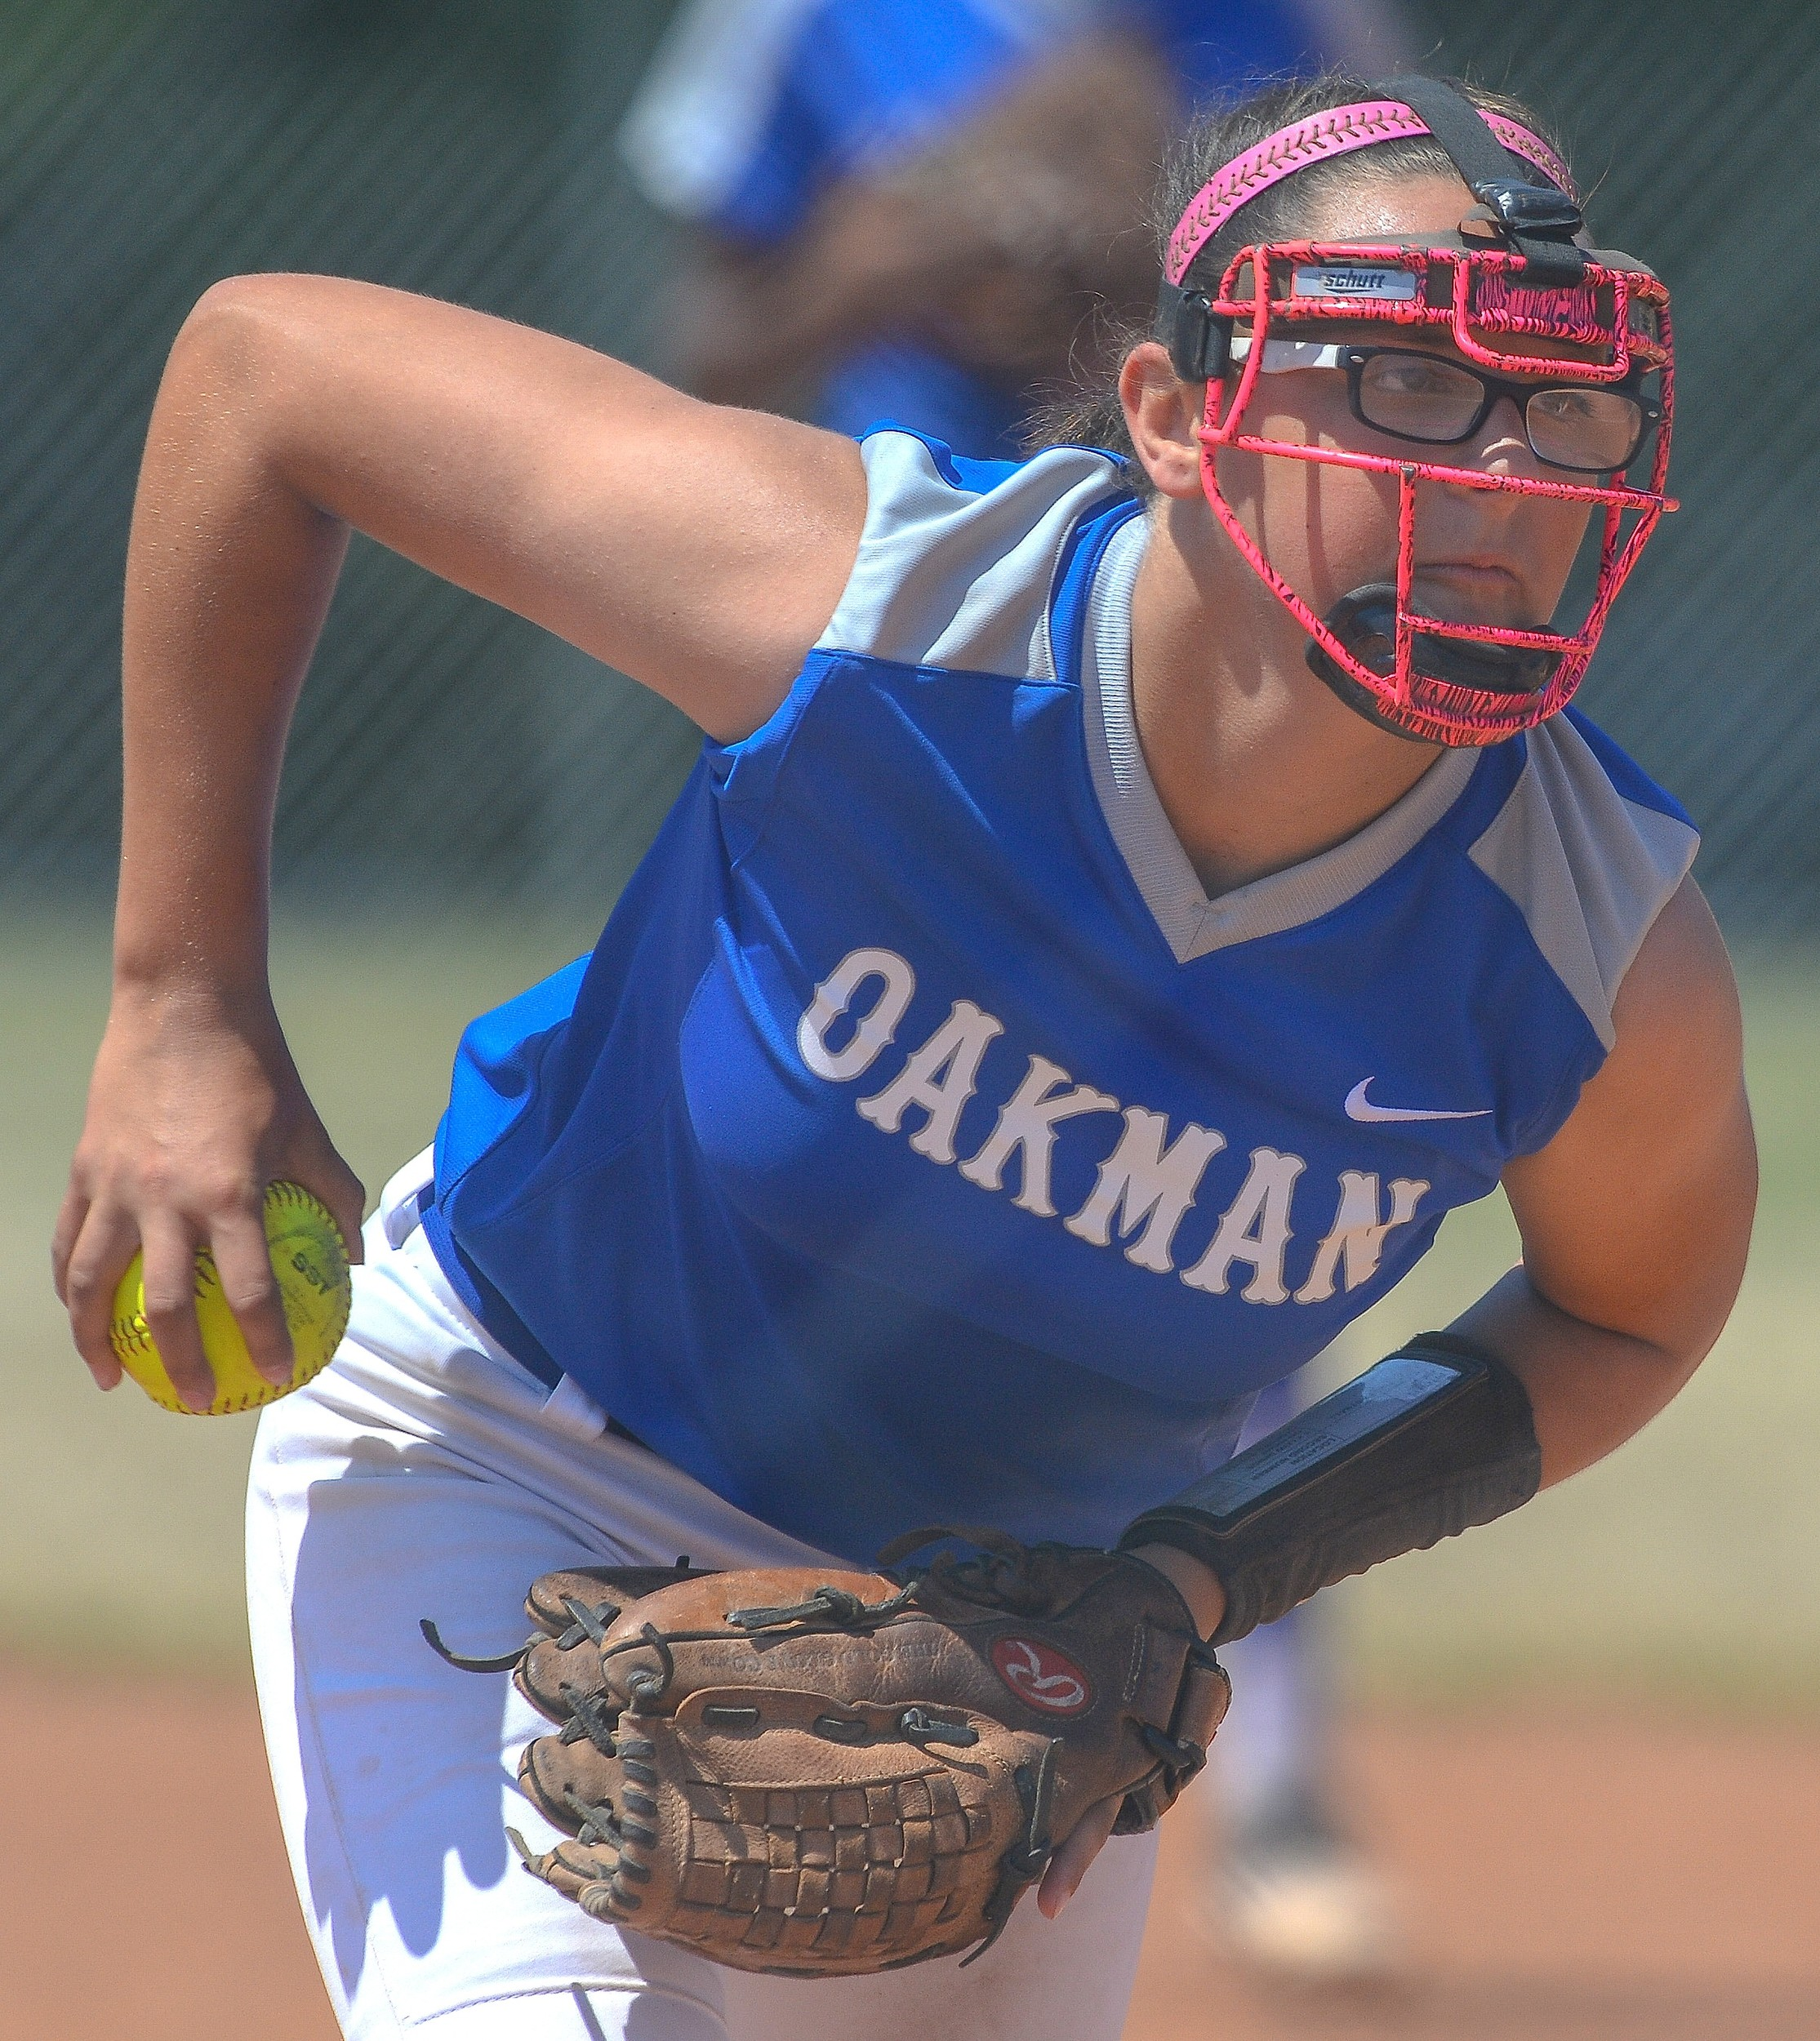 Oakman pitcher Jesse Aston pitches against Pleasant Valley during the Wildcats' regional opener. Carbon?Hill faces Oakman in an elimination game at 9 a.m. today.